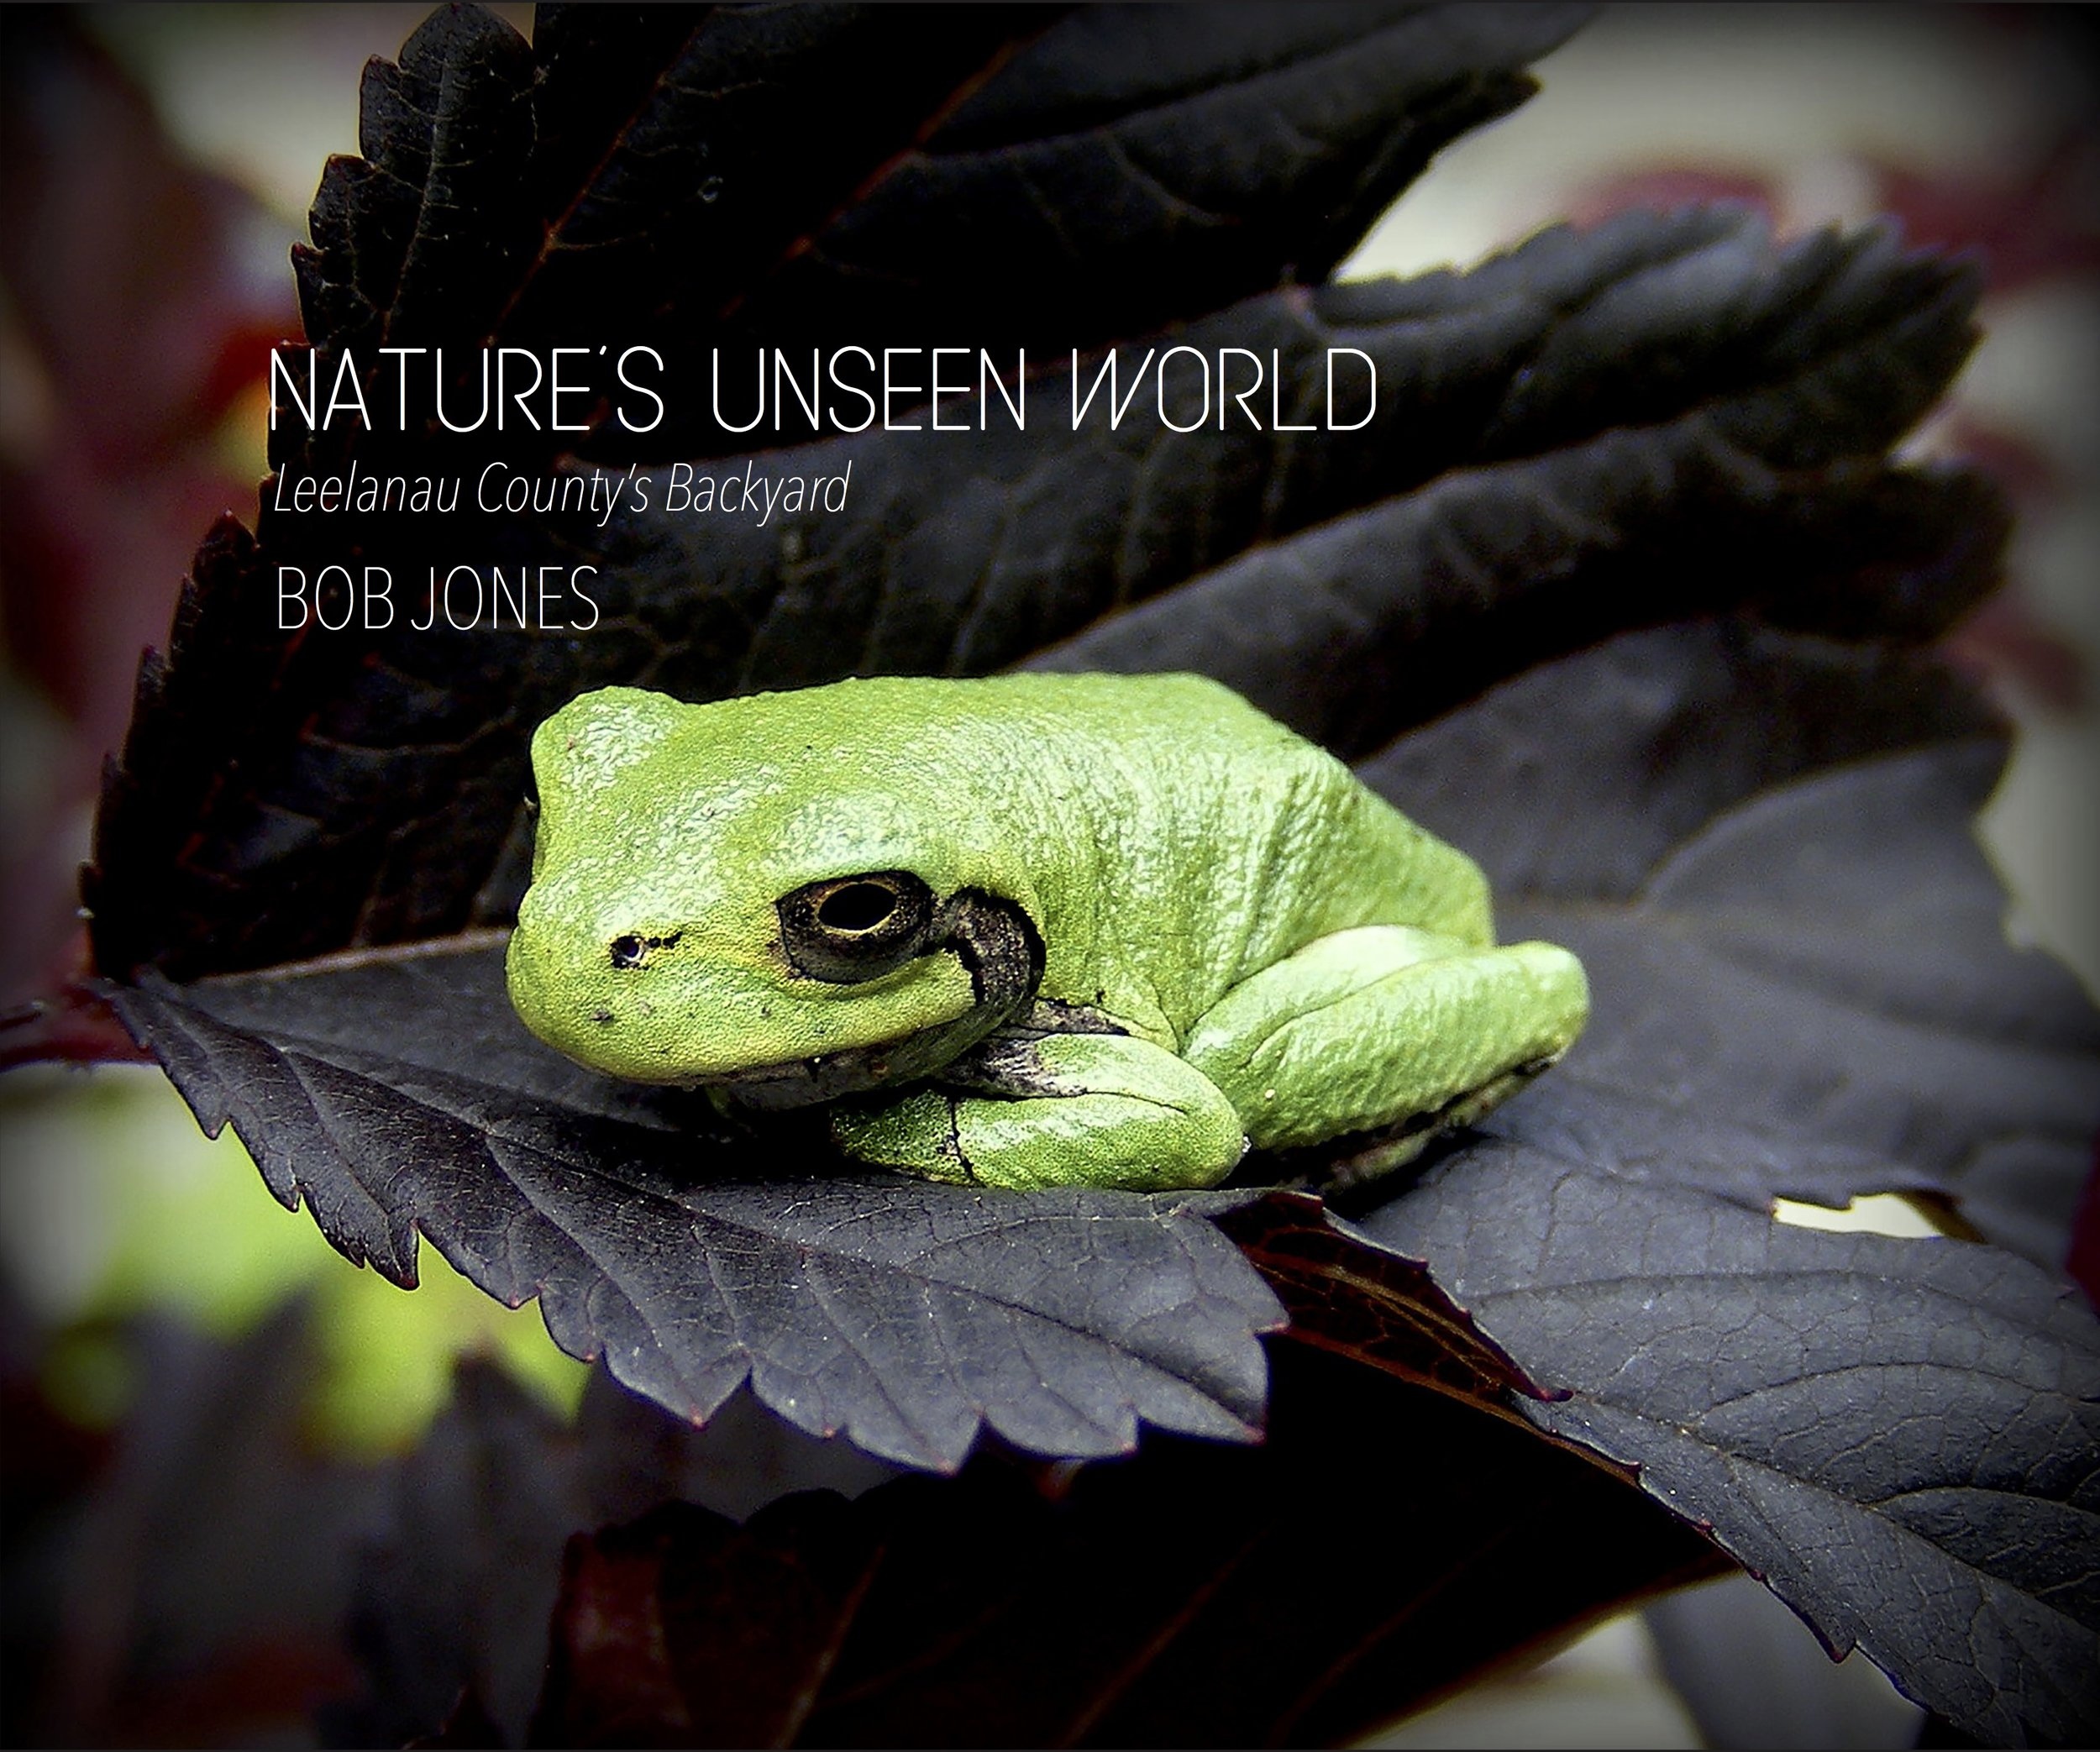 - I'm grateful to Bob Jones for giving all of us who revere the outdoors this intimate and inspiring window into our incredible natural world. For nature lovers, this book is not to be missed! —Thomas Nelson, Executive Director of the Leelanau ConservancyMore about the bookBuy the book on Amazon